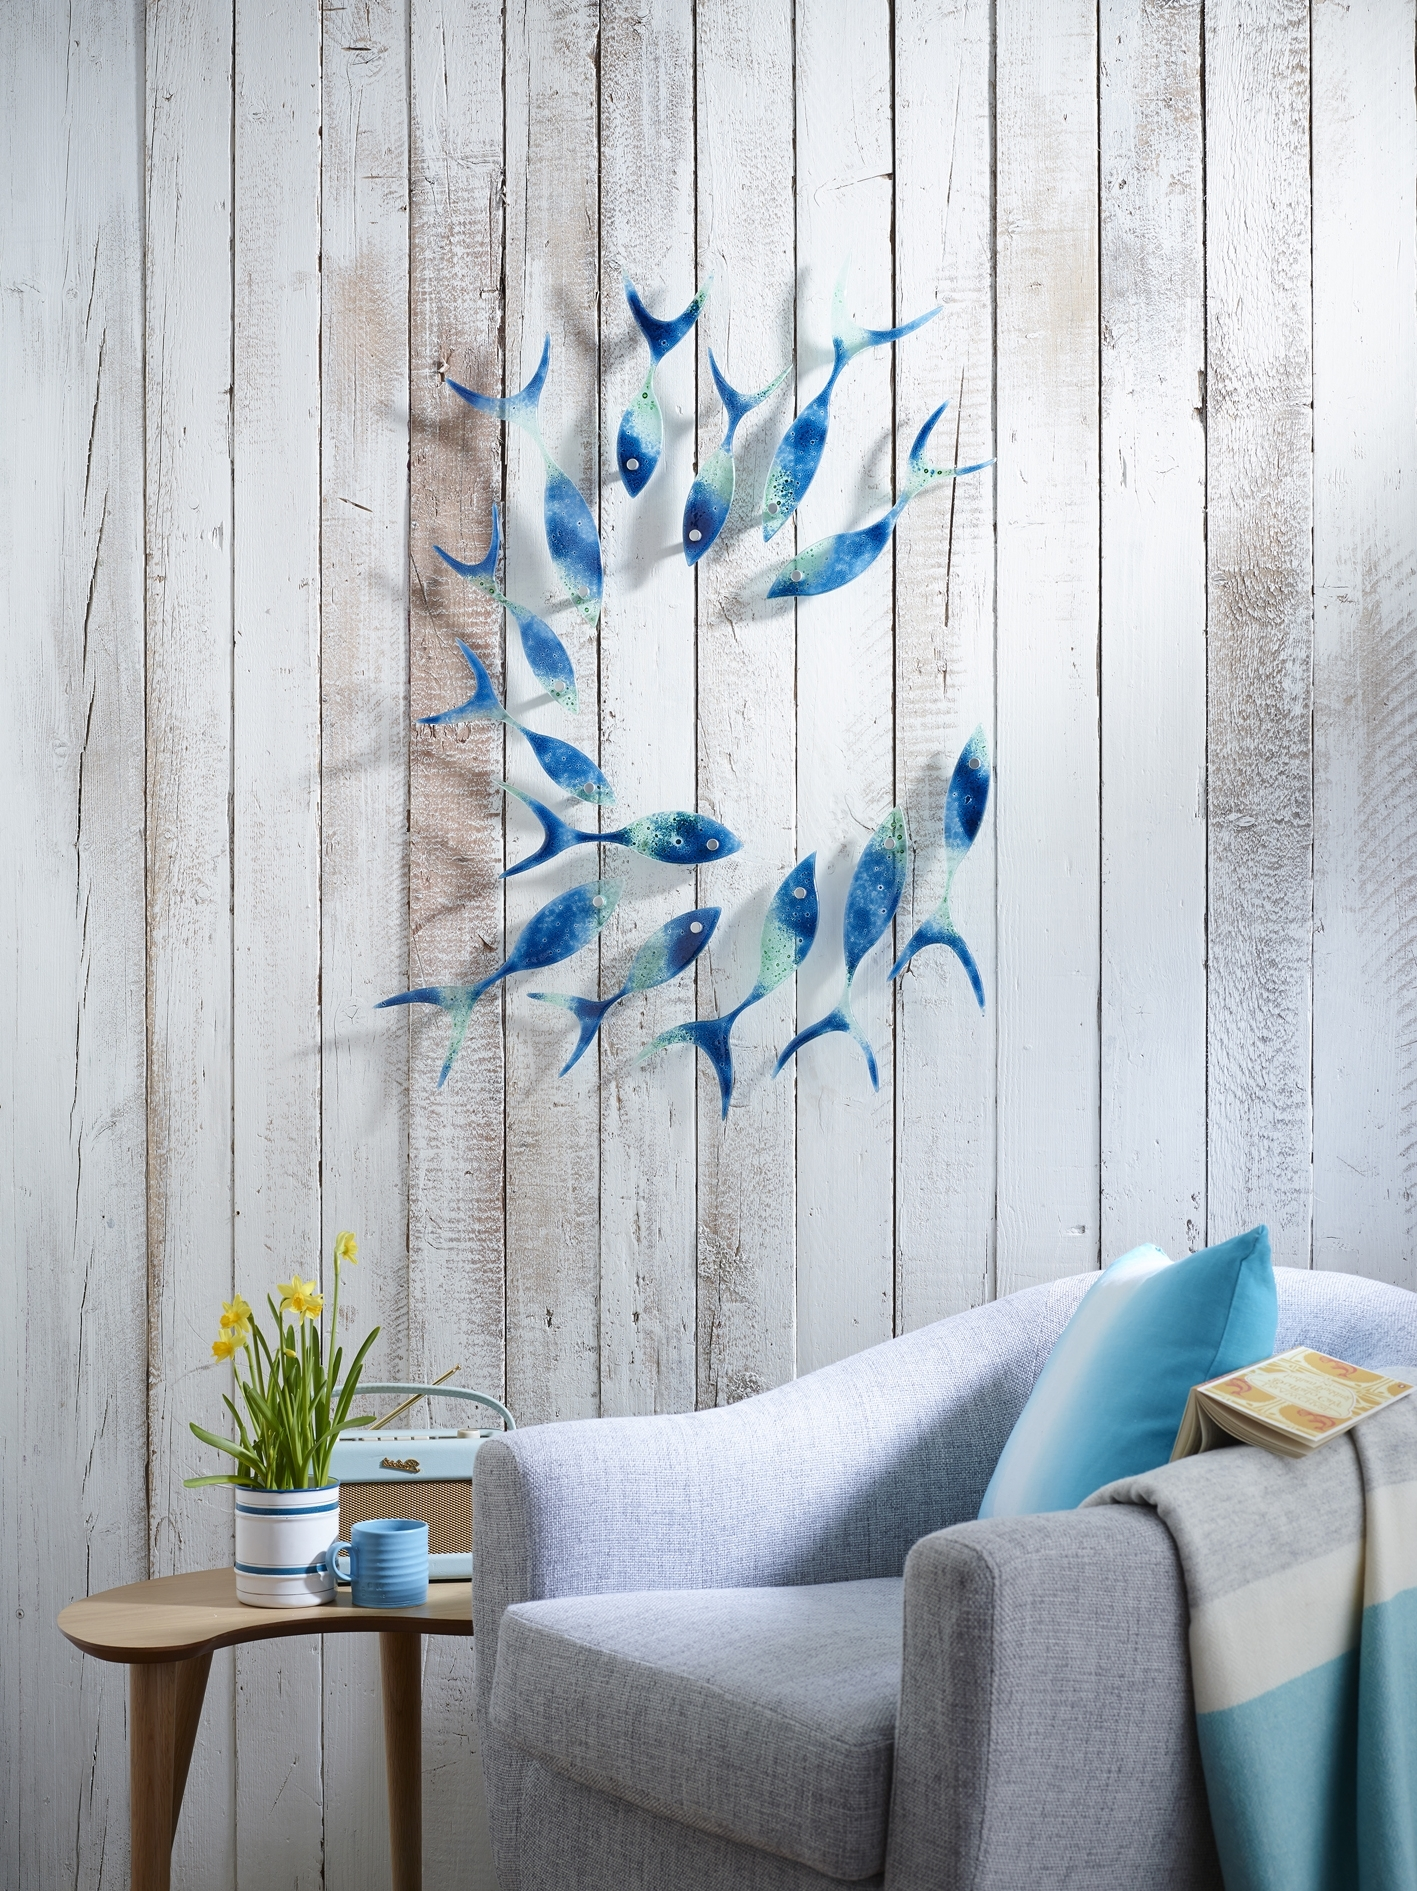 Wall Hangings, Fish And Glass Throughout Preferred Fused Glass Wall Art Manchester (View 13 of 15)